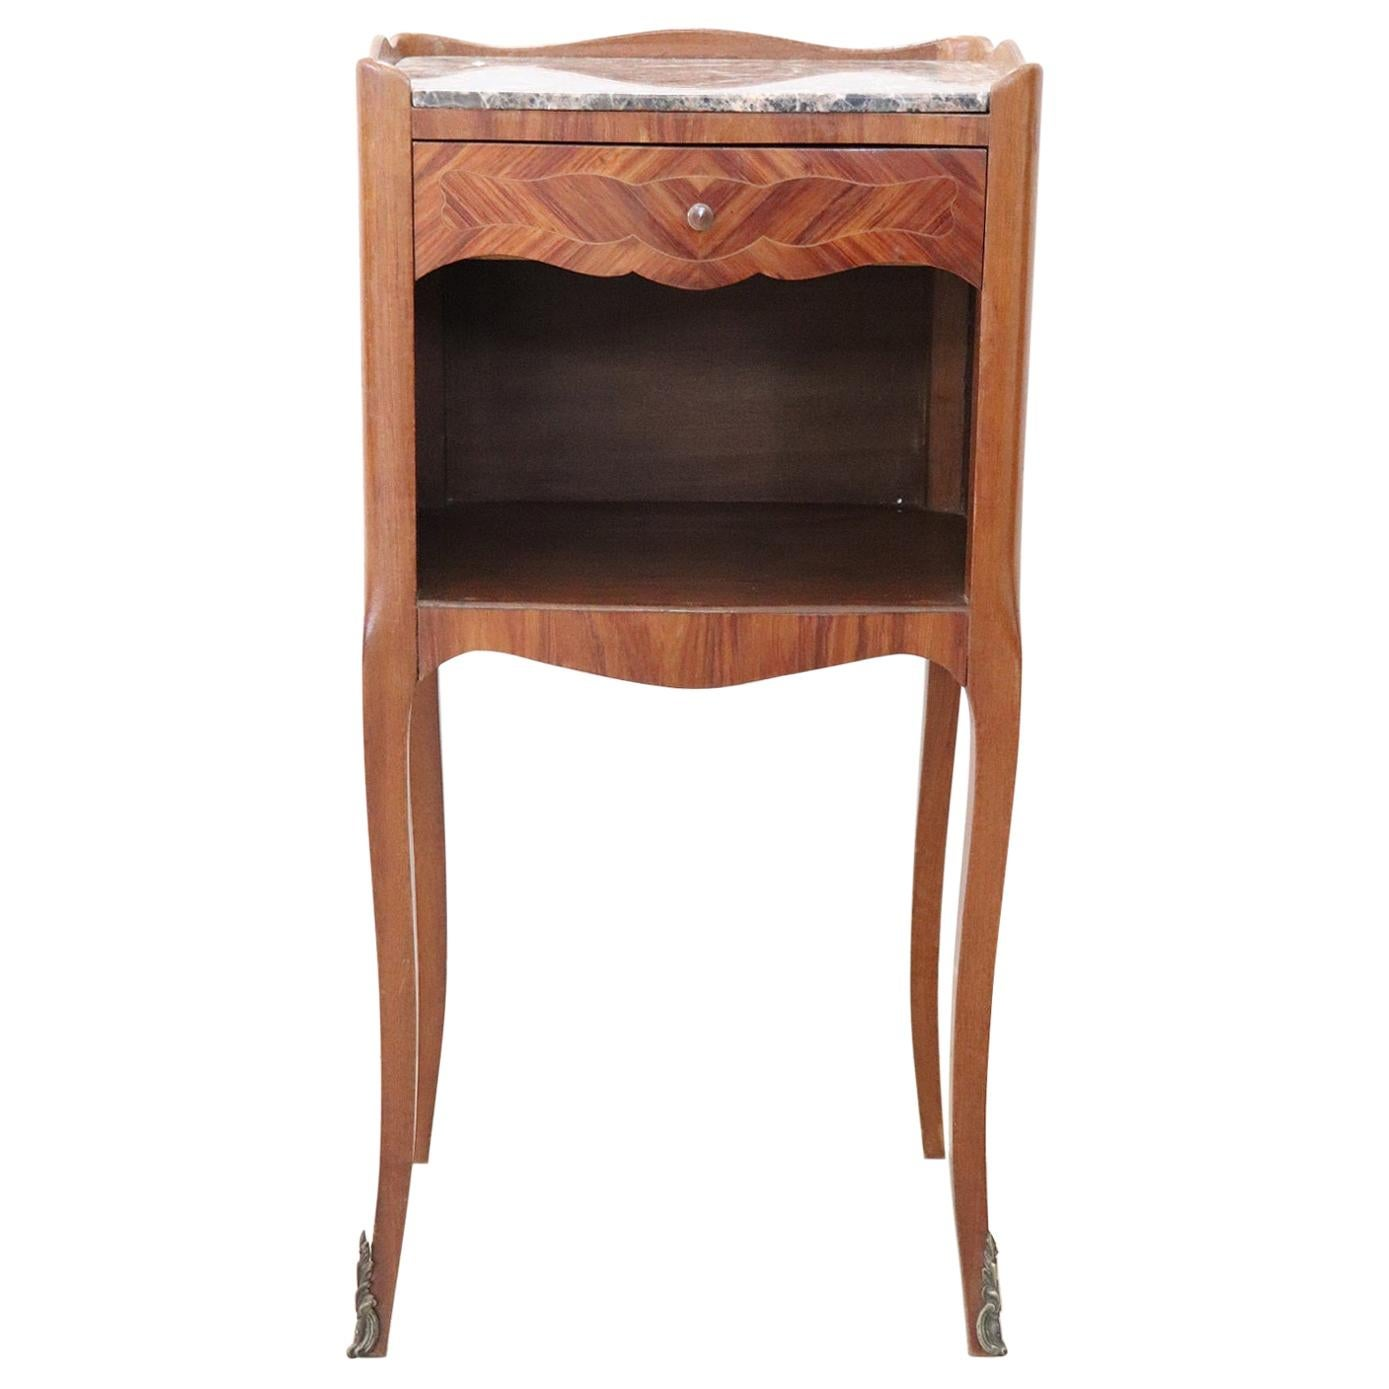 20th Century French Louis XV Style Inlaid Wood Side Tables with Marble Top